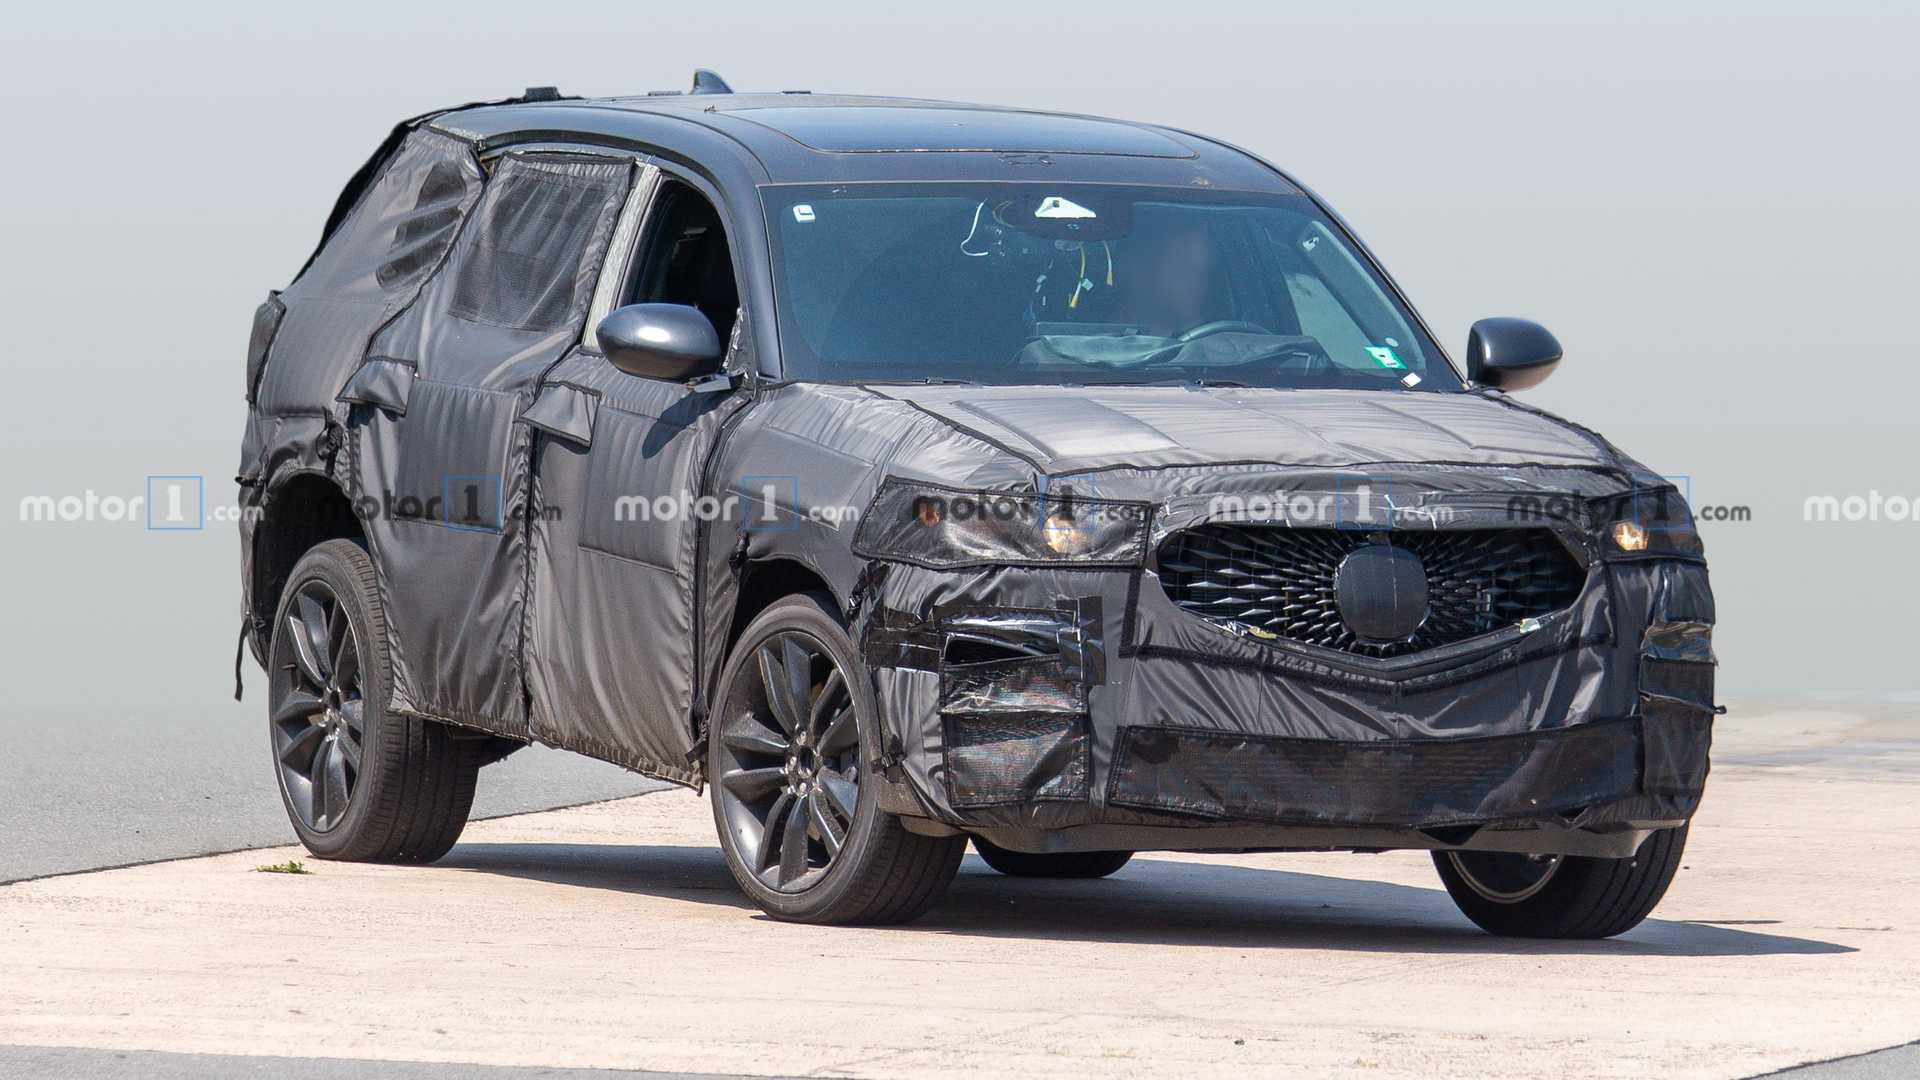 36 Great 2020 Acura Mdx Spy Photos Research New by 2020 Acura Mdx Spy Photos